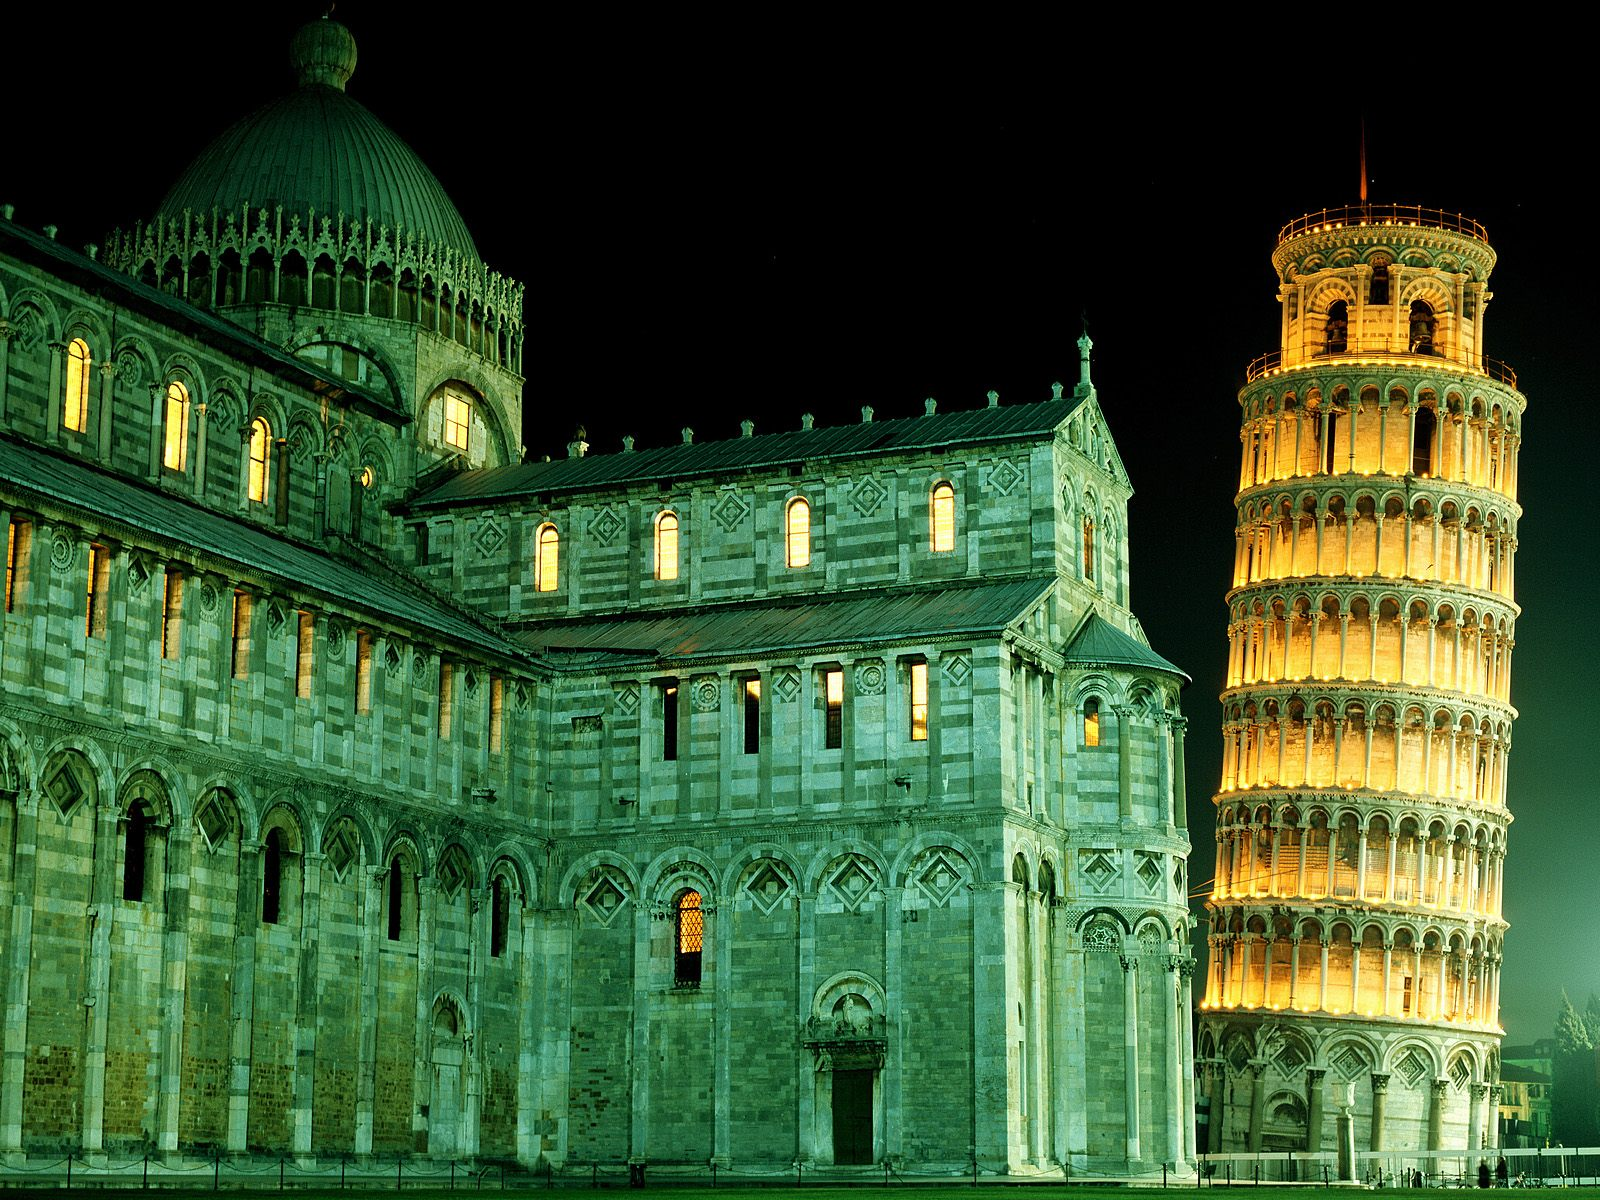 http://3.bp.blogspot.com/-1vZoGau4PSc/Tcp3k5NIEmI/AAAAAAAACXA/W6Pte_-dyCw/s1600/Duomo+and+Leaning+Tower%252C+Pisa%252C+Italy.jpg